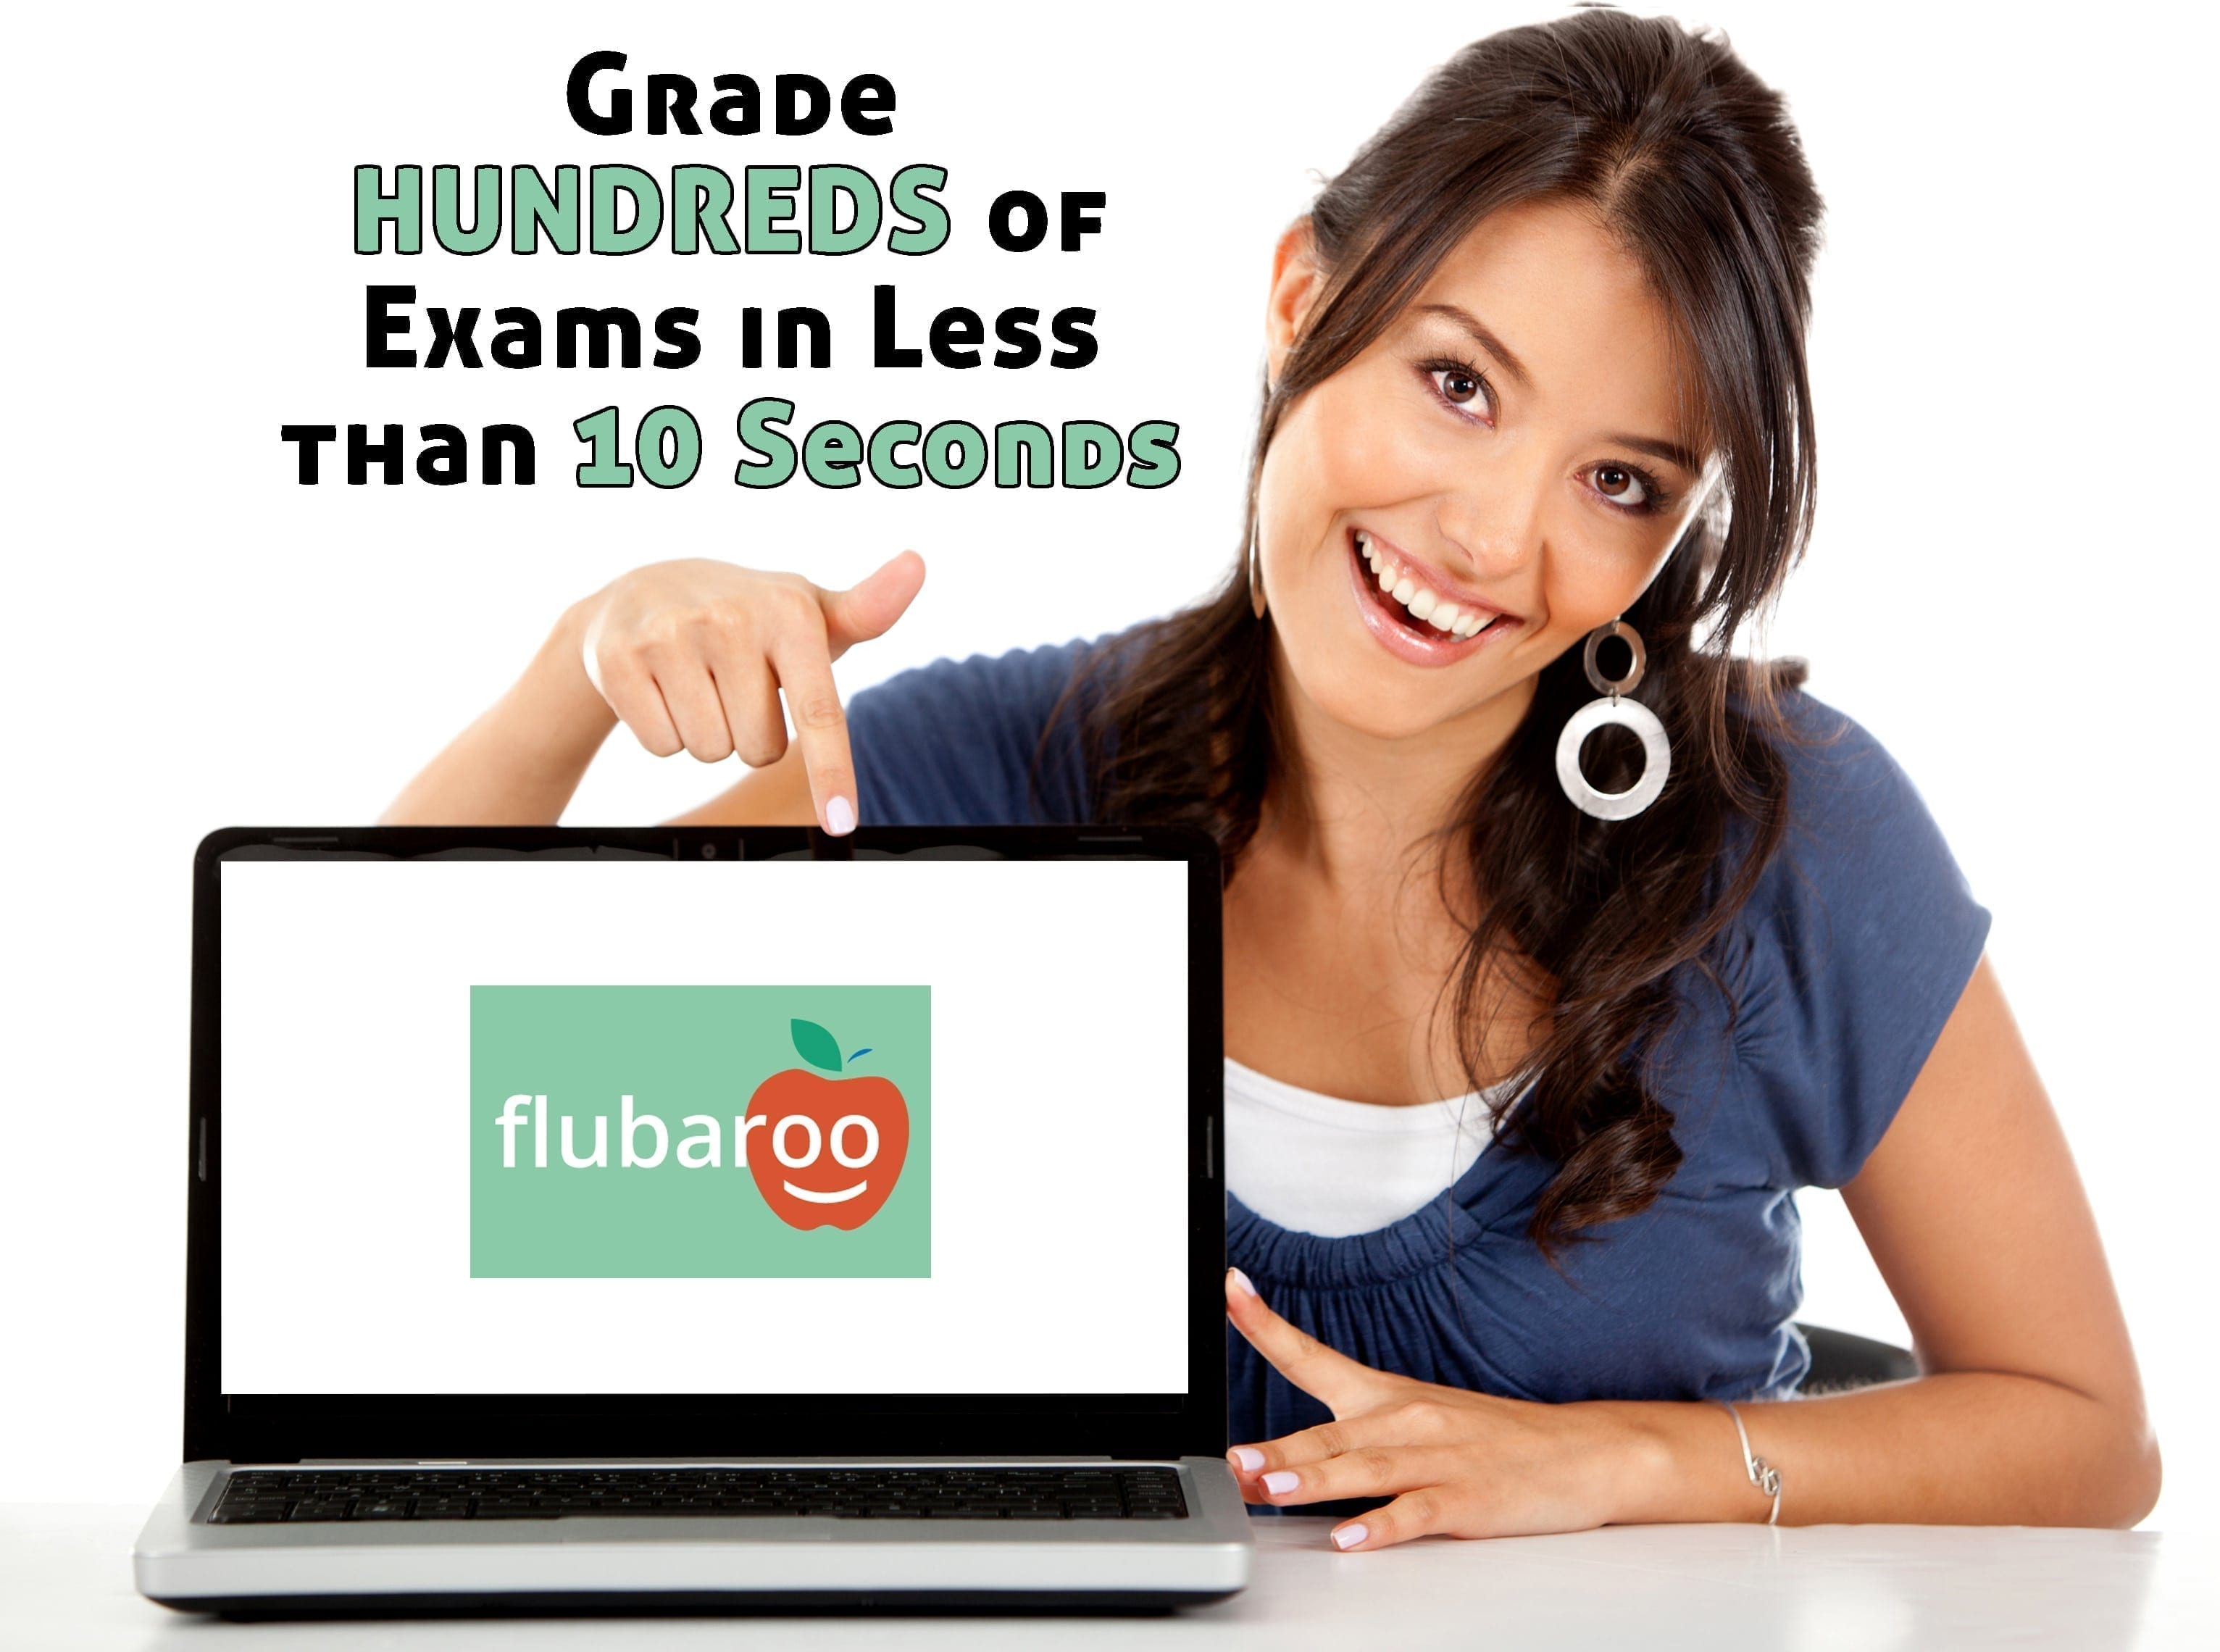 Grade HUNDREDS of Exams in Less than 10 Seconds!